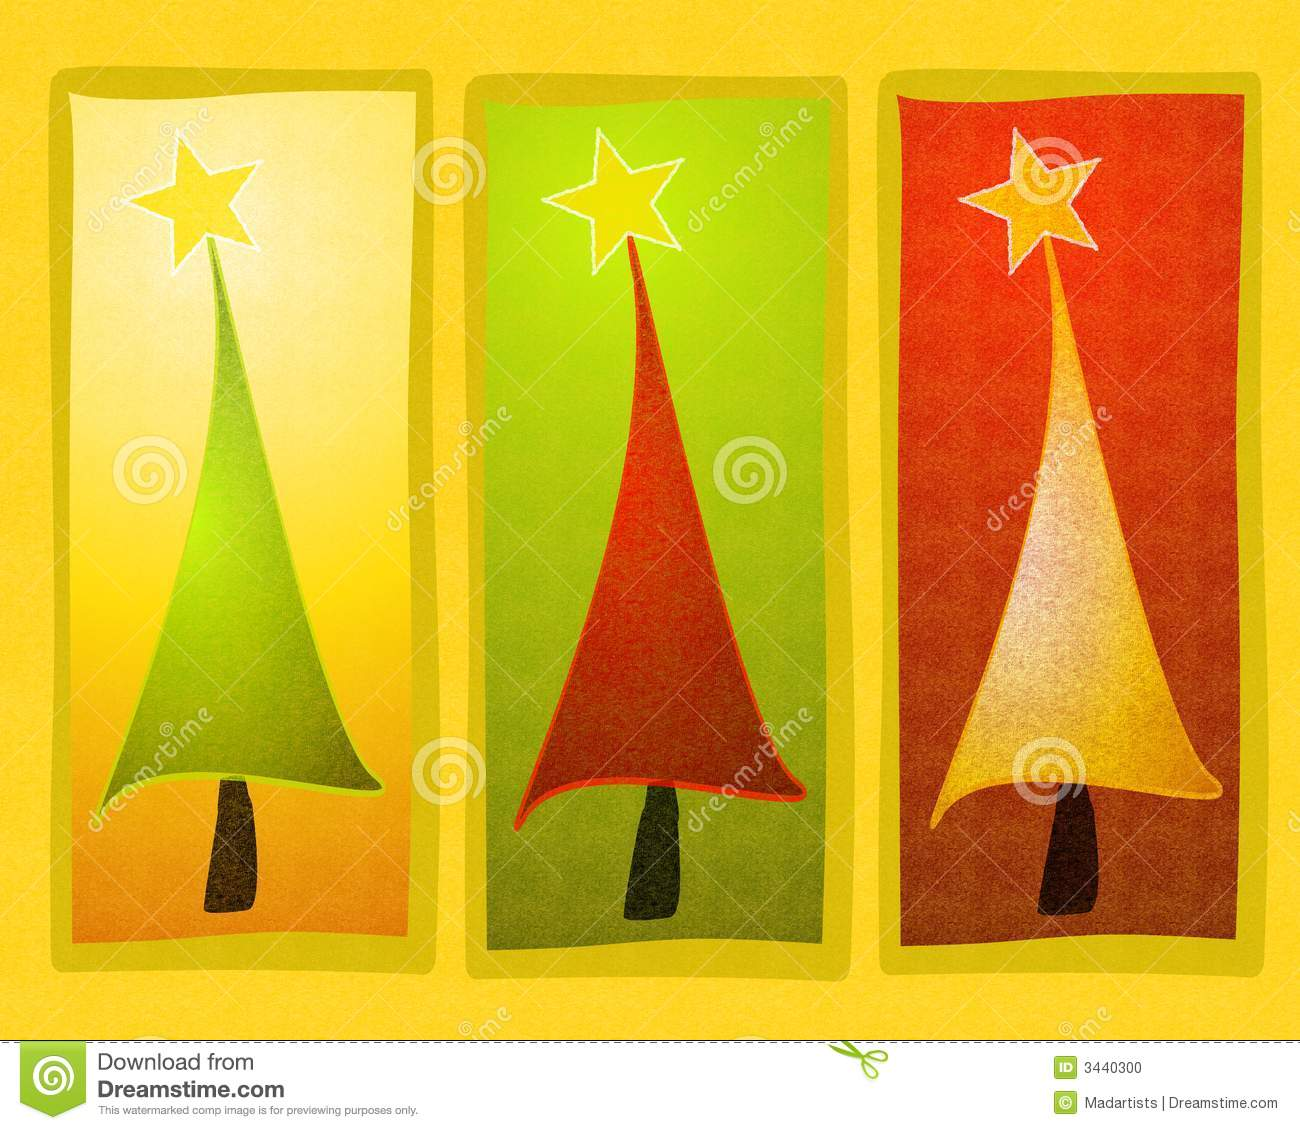 Rustic Christmas Tree Clip Art Stock Photo.